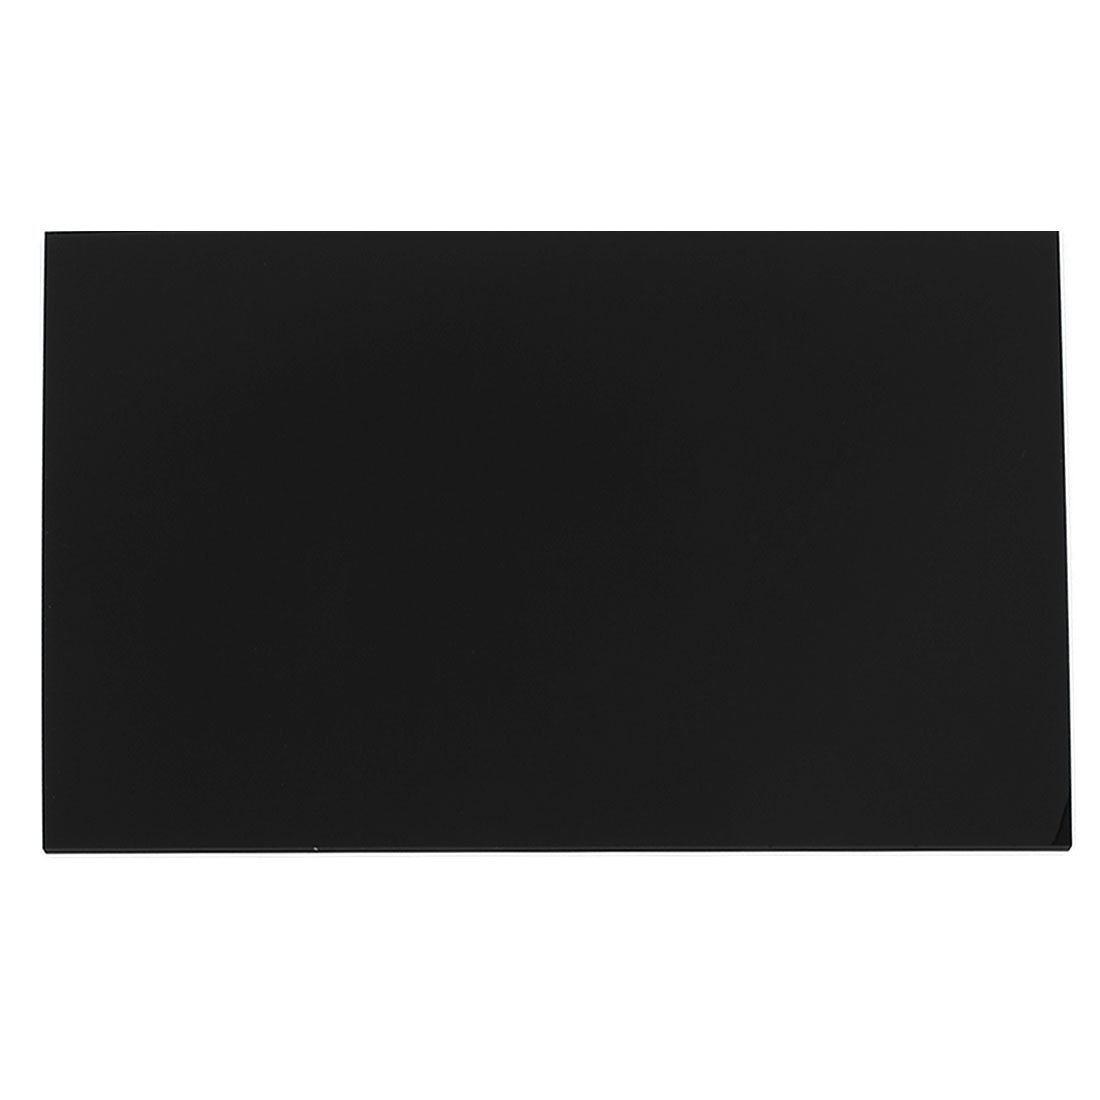 Uxcell 3 mm Black Plastic A4 Acrylic Plexiglass Perspex Sheet 210 mm x 297mm